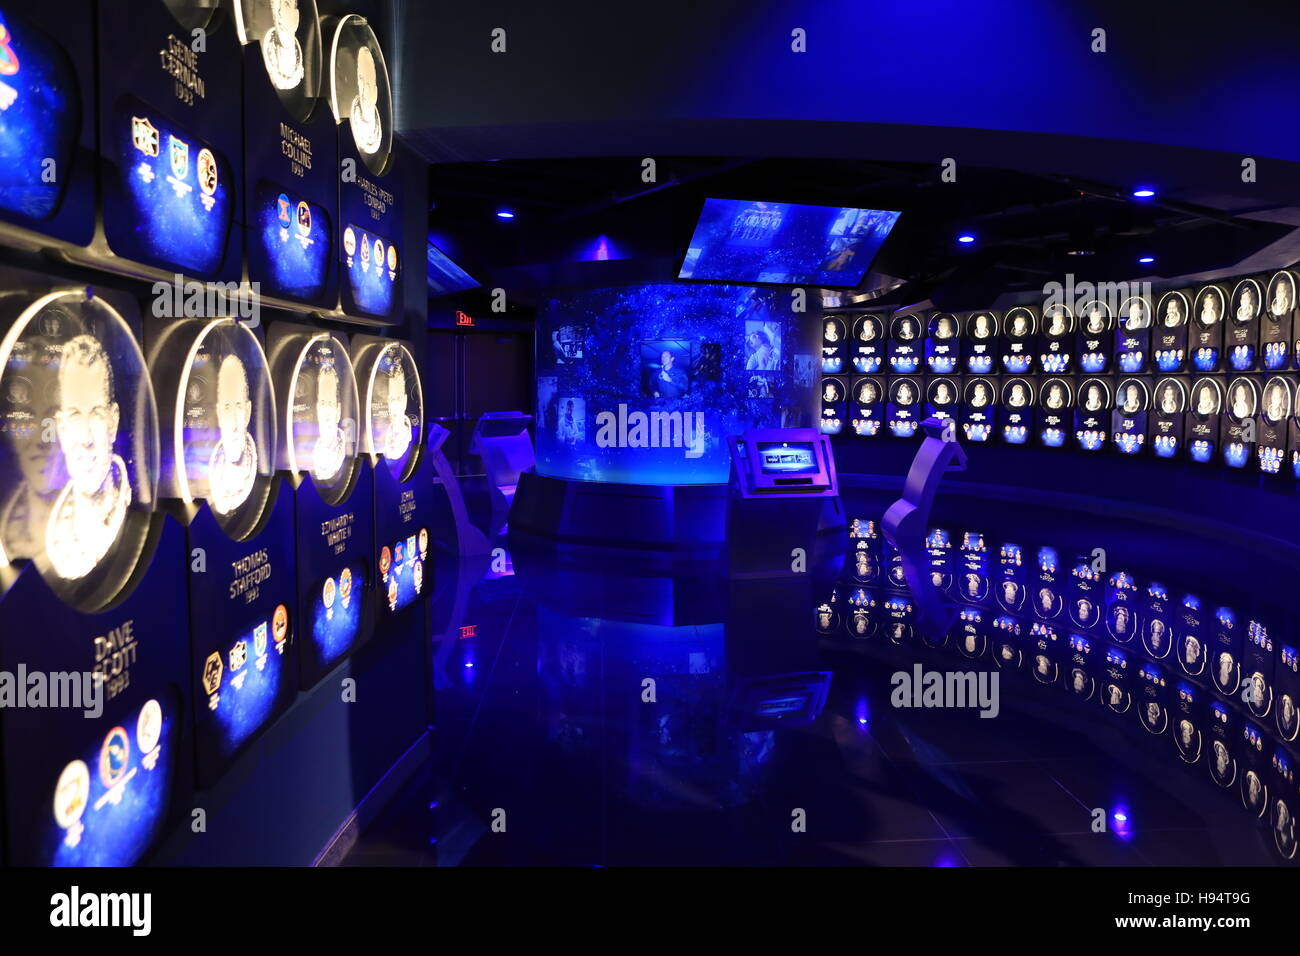 The U.S. Astronaut Hall of Fame, part of the Heroes and Legends attraction at the Kennedy Space Center Visitor Complex - Stock Image